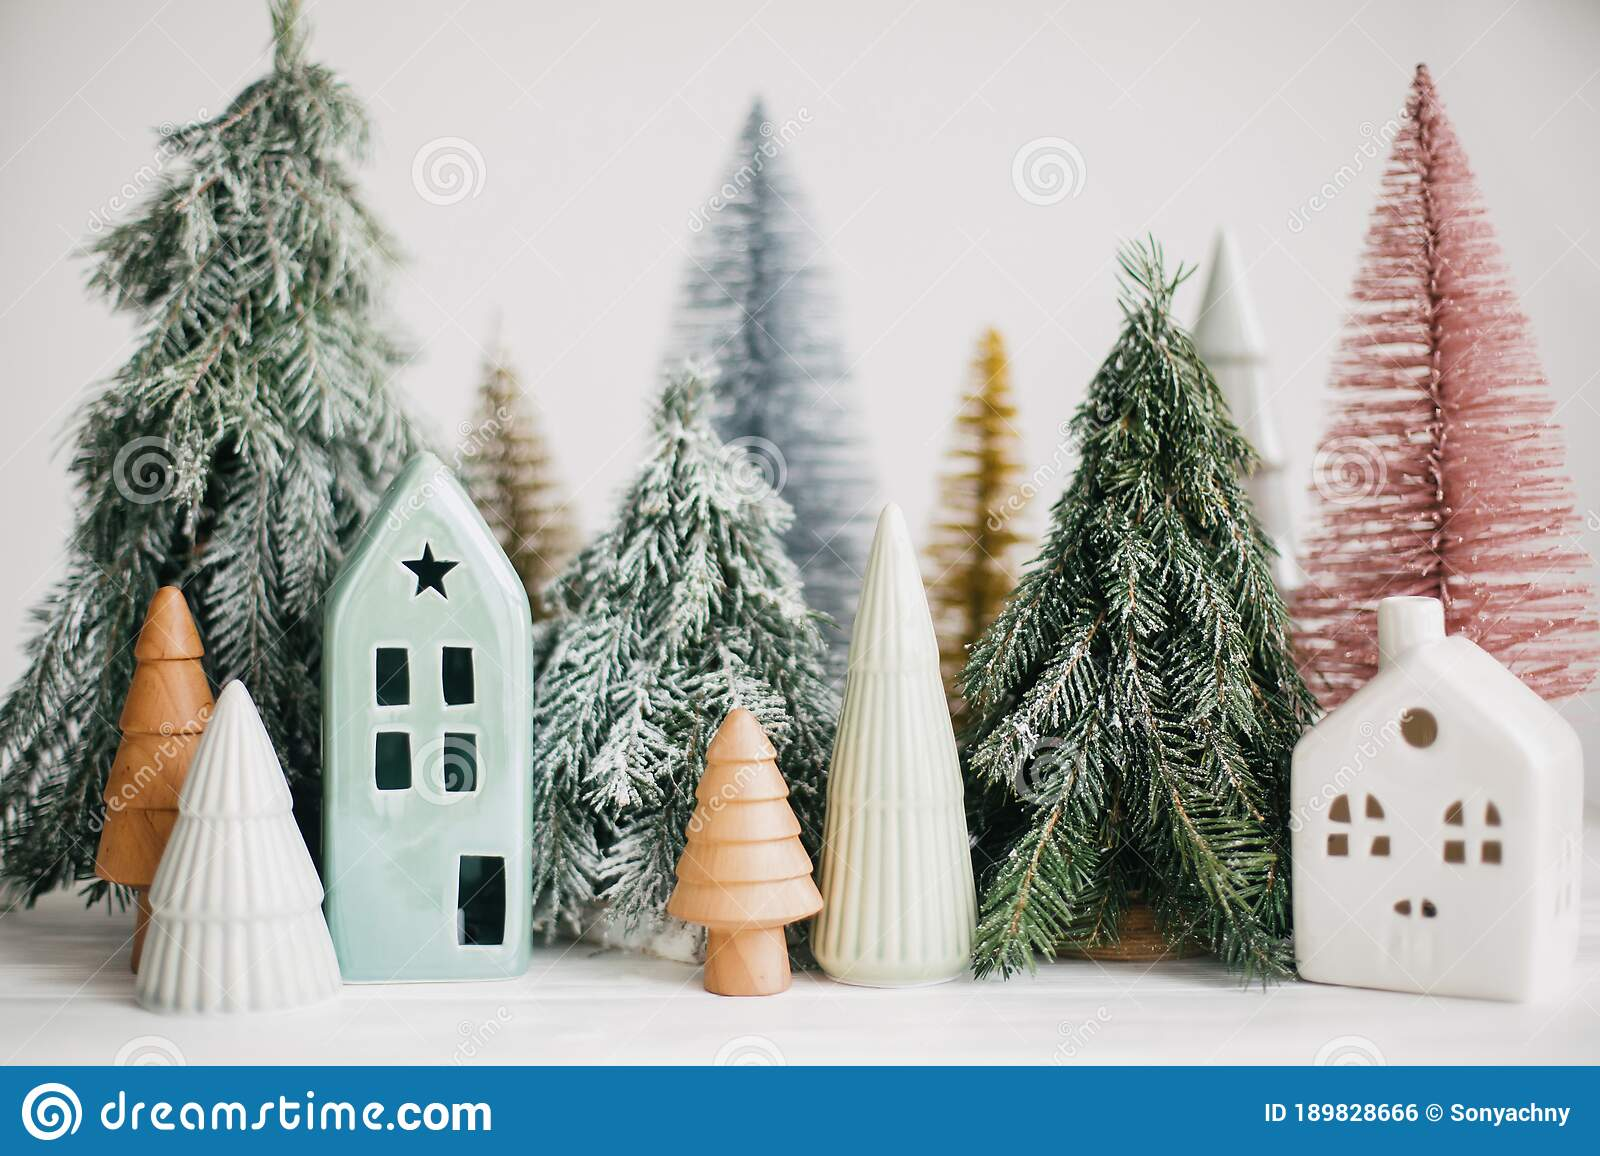 Christmas Little Houses And Trees On White Background Festive Modern Decor Happy Holidays Miniature Cozy Village Ceramic Stock Photo Image Of Decoration Modern 189828666